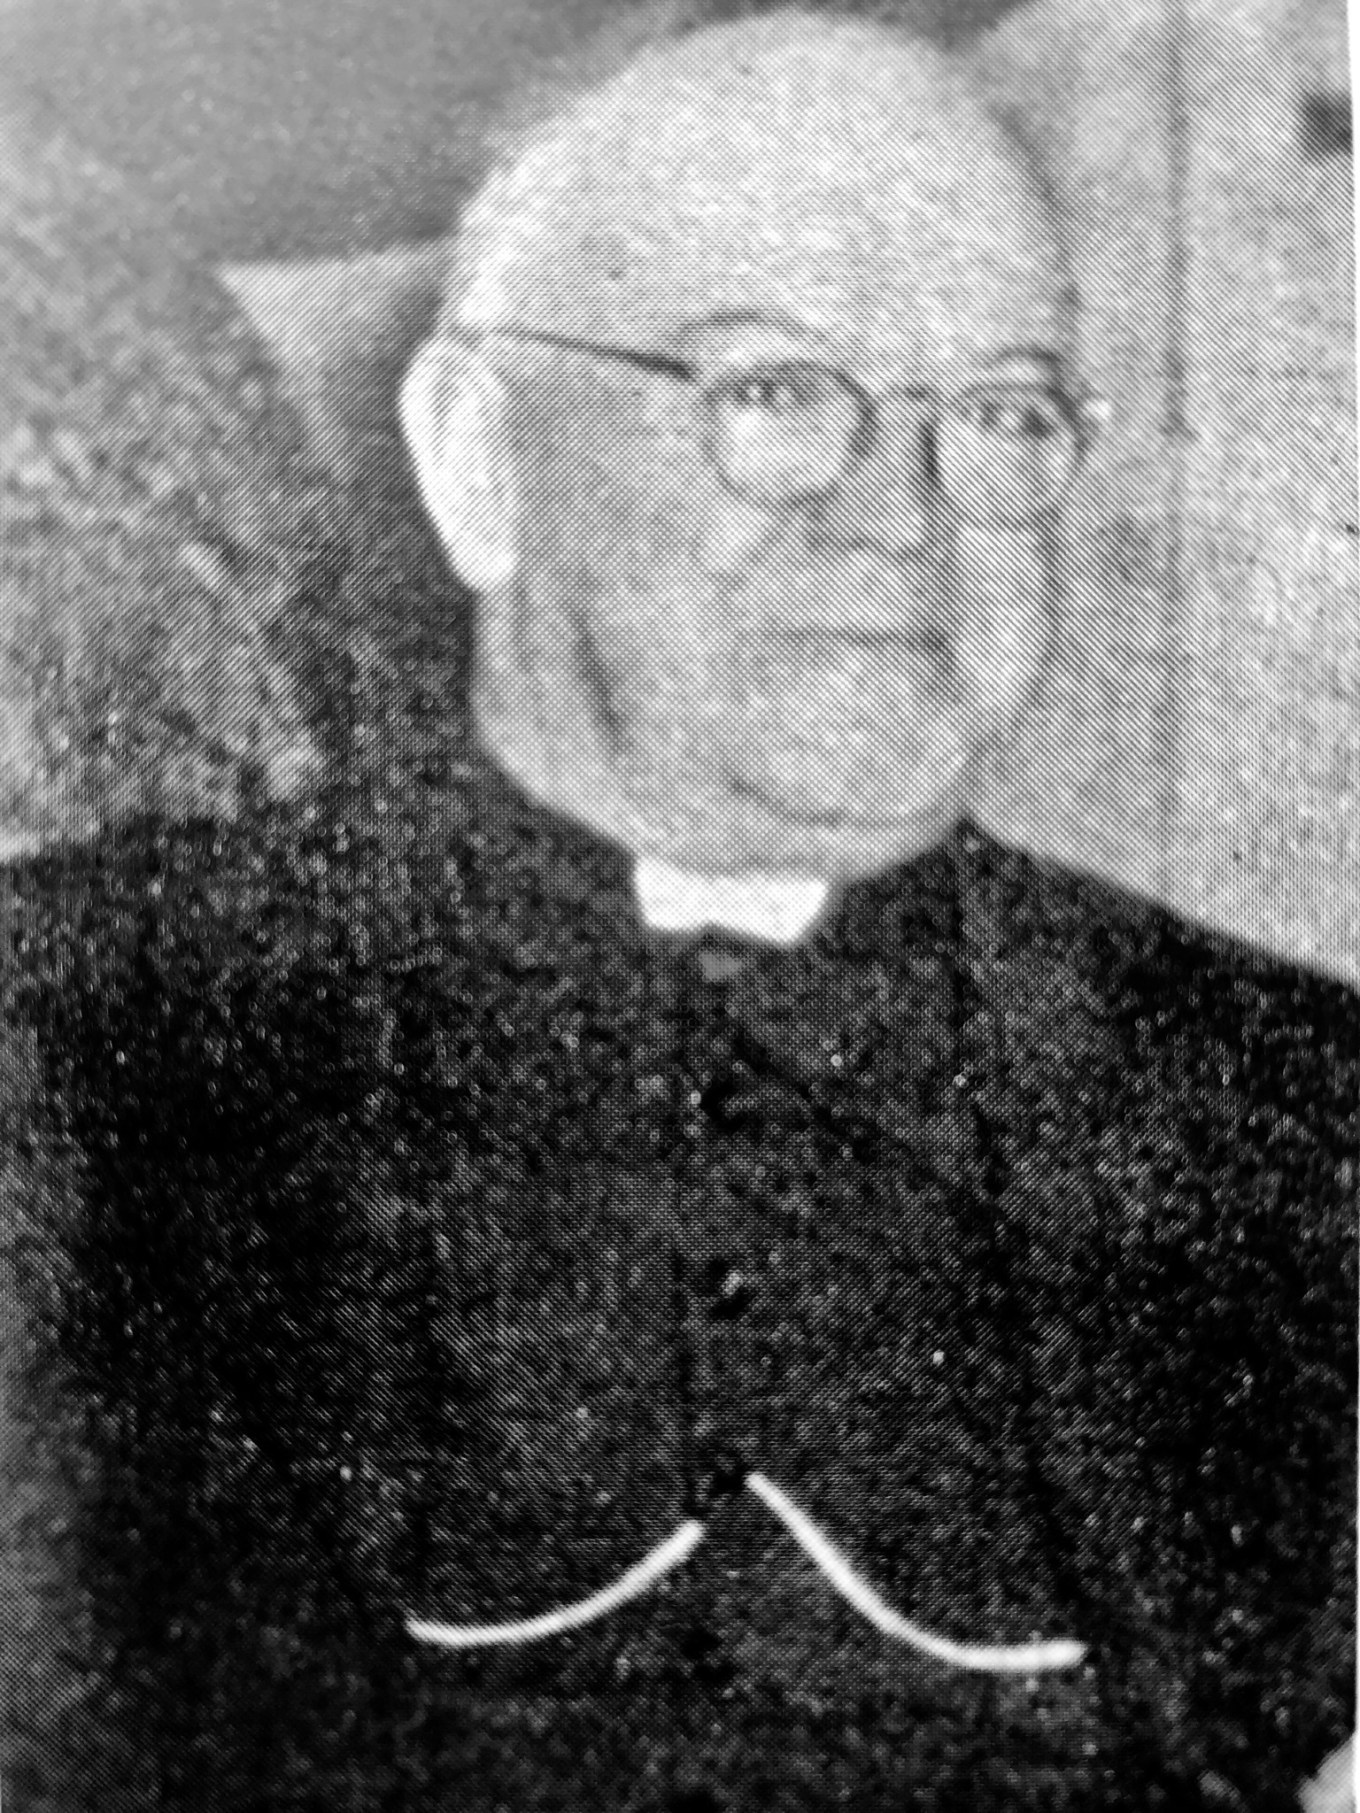 Rev. Charles Johnson